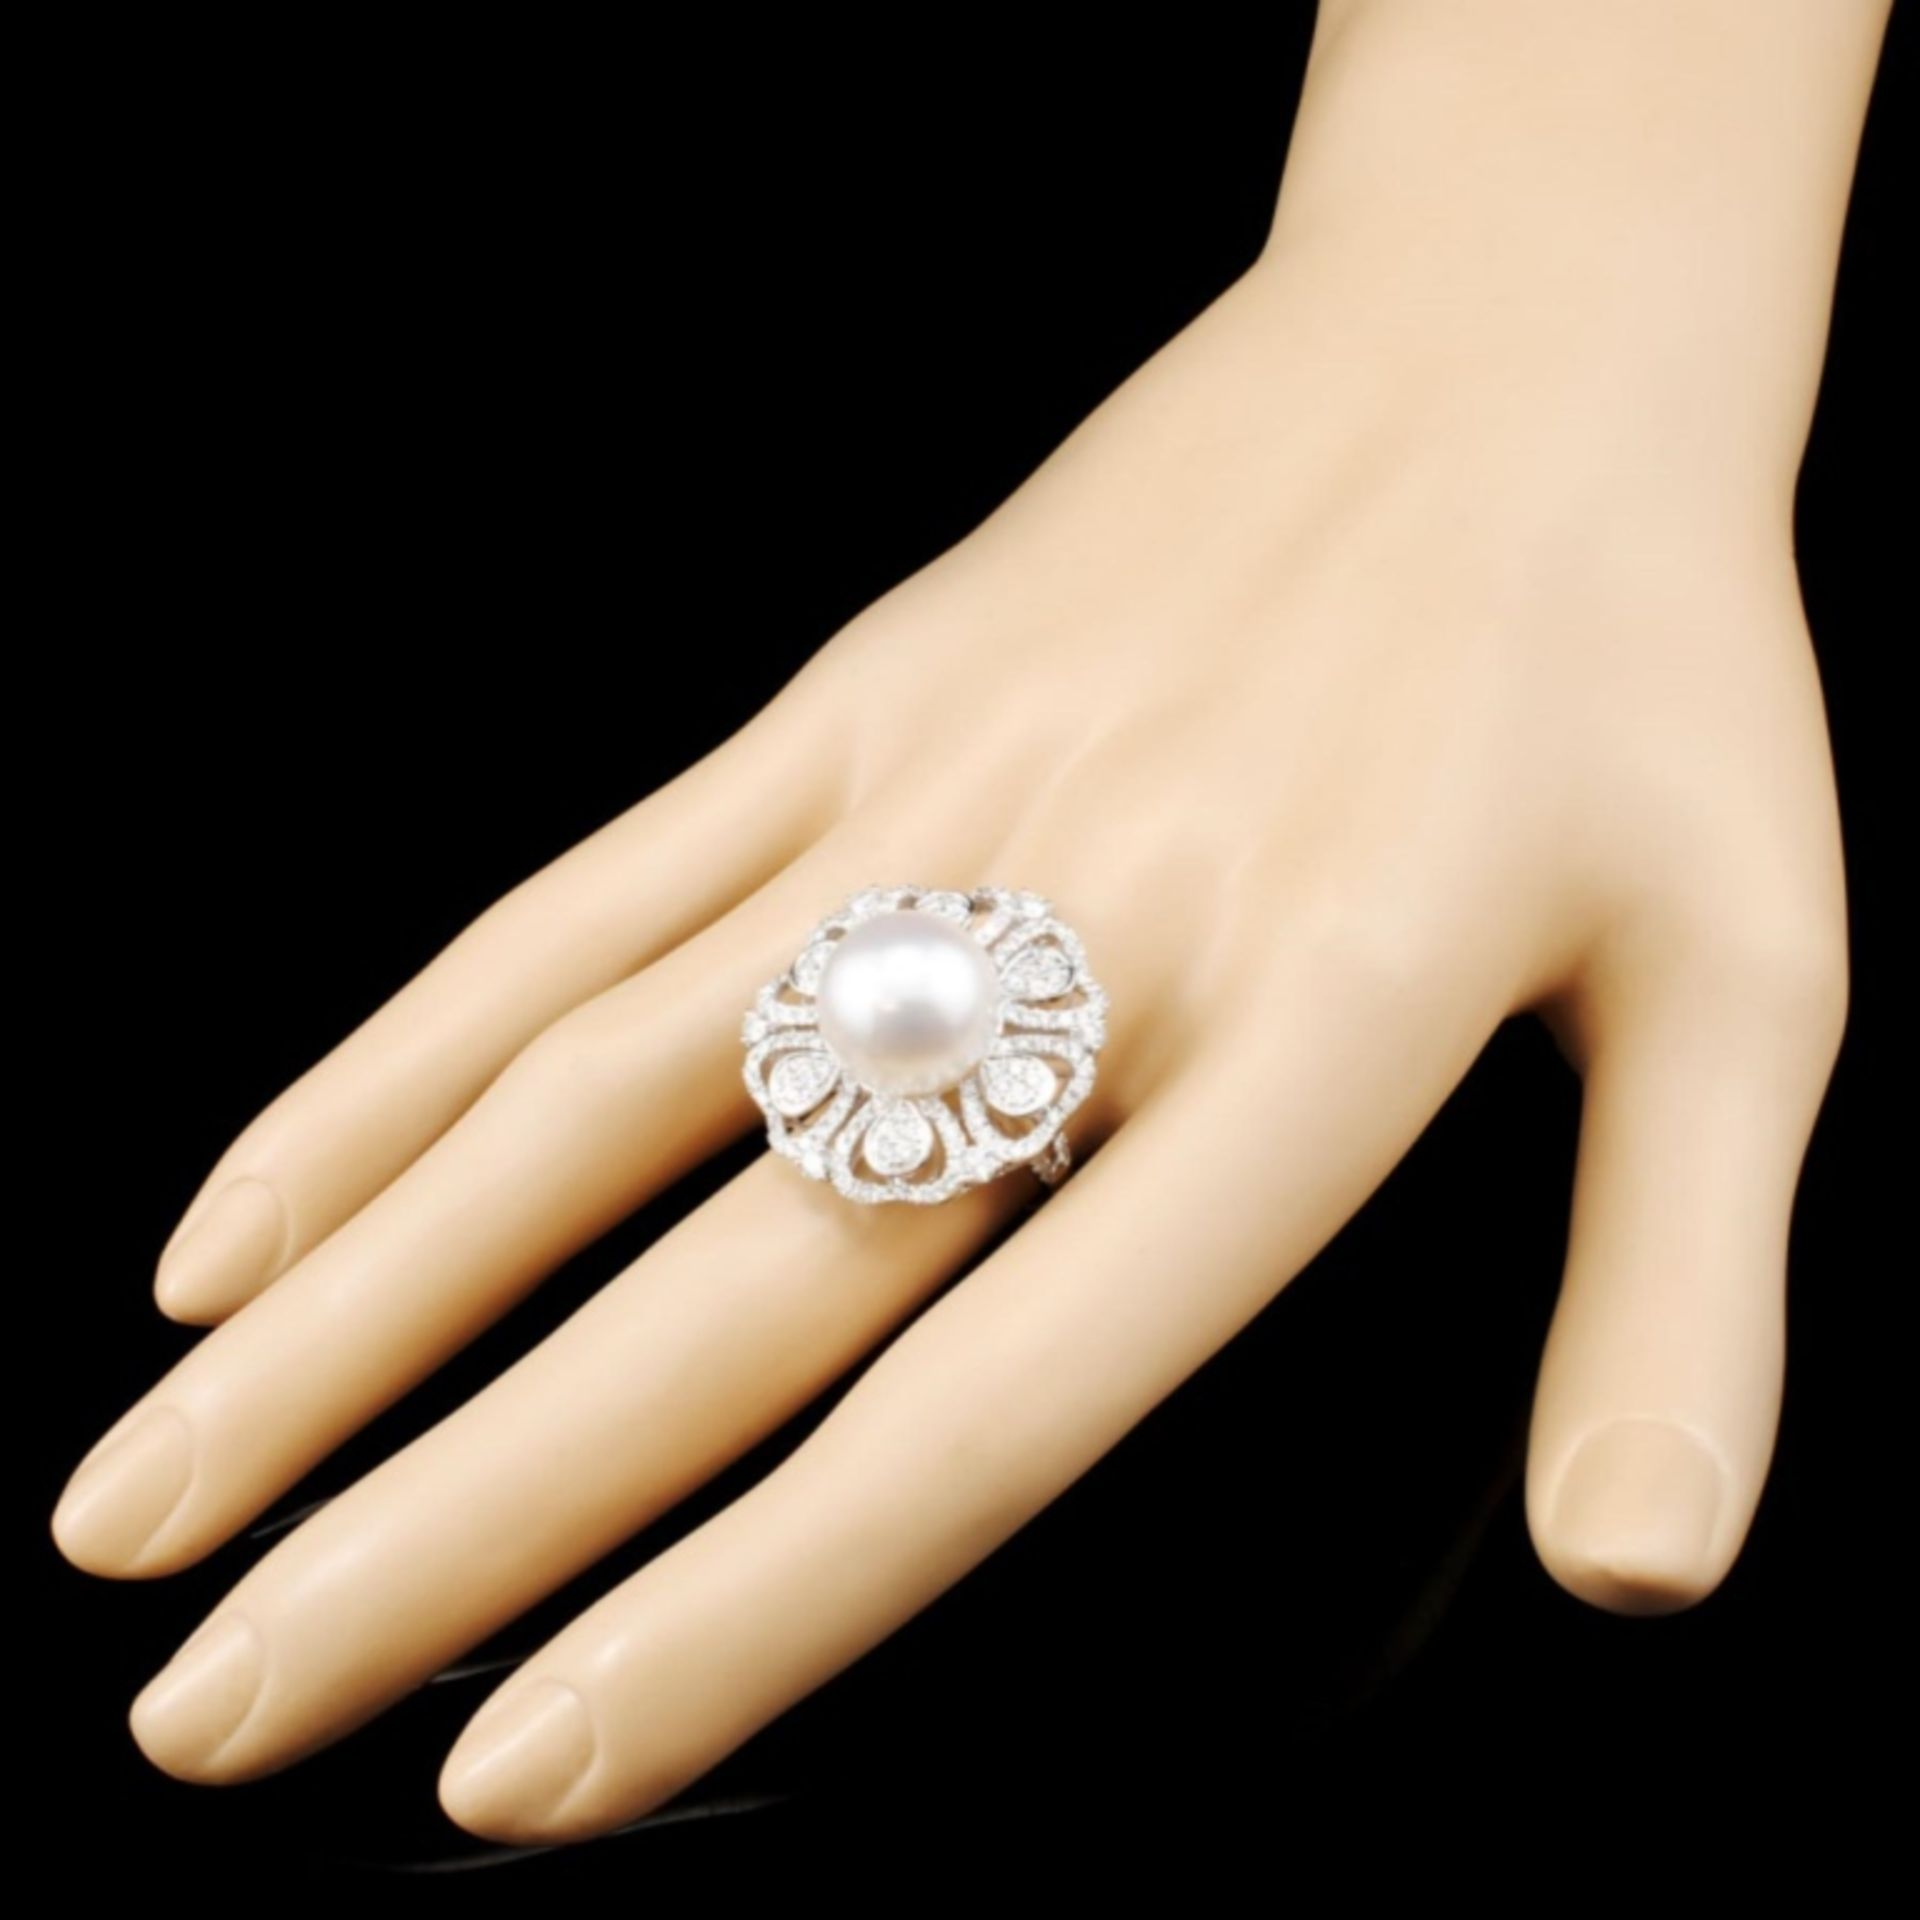 18K Gold 13MM Pearl & 1.61ctw Diamond Ring - Image 3 of 5